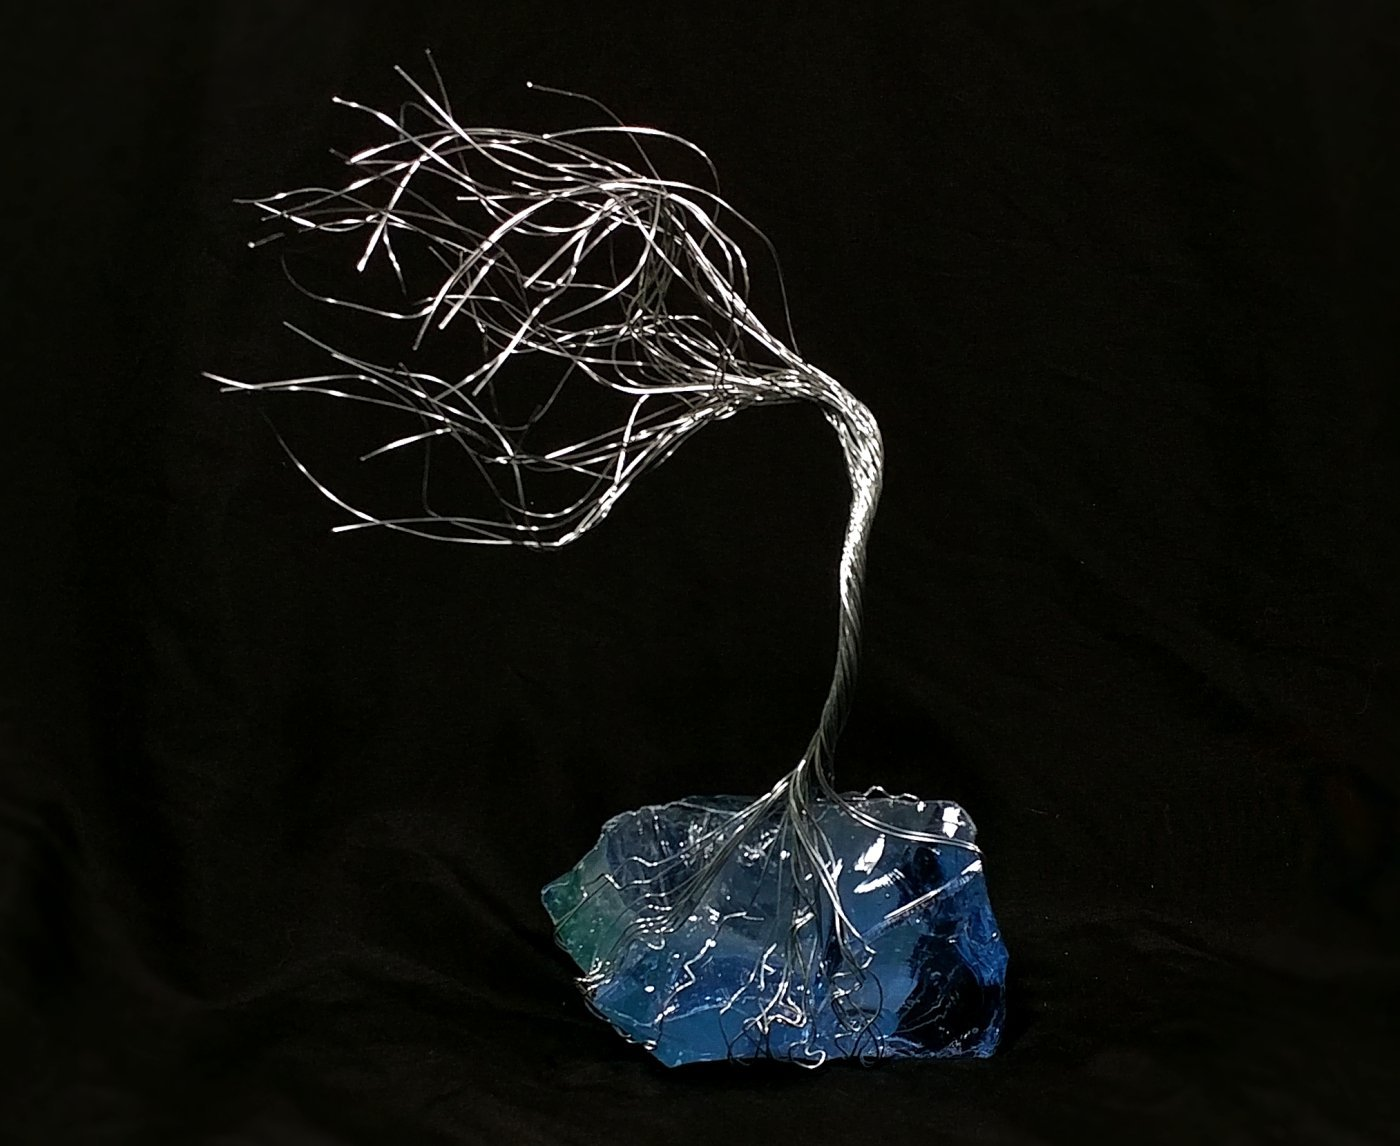 Ice Blue Glass & Wire Spirit Tree # 1314 Glass Art Sculpture 7th Anniversary Gift Steampunk Vintage Industrial Christmas Present by Refreshing Art